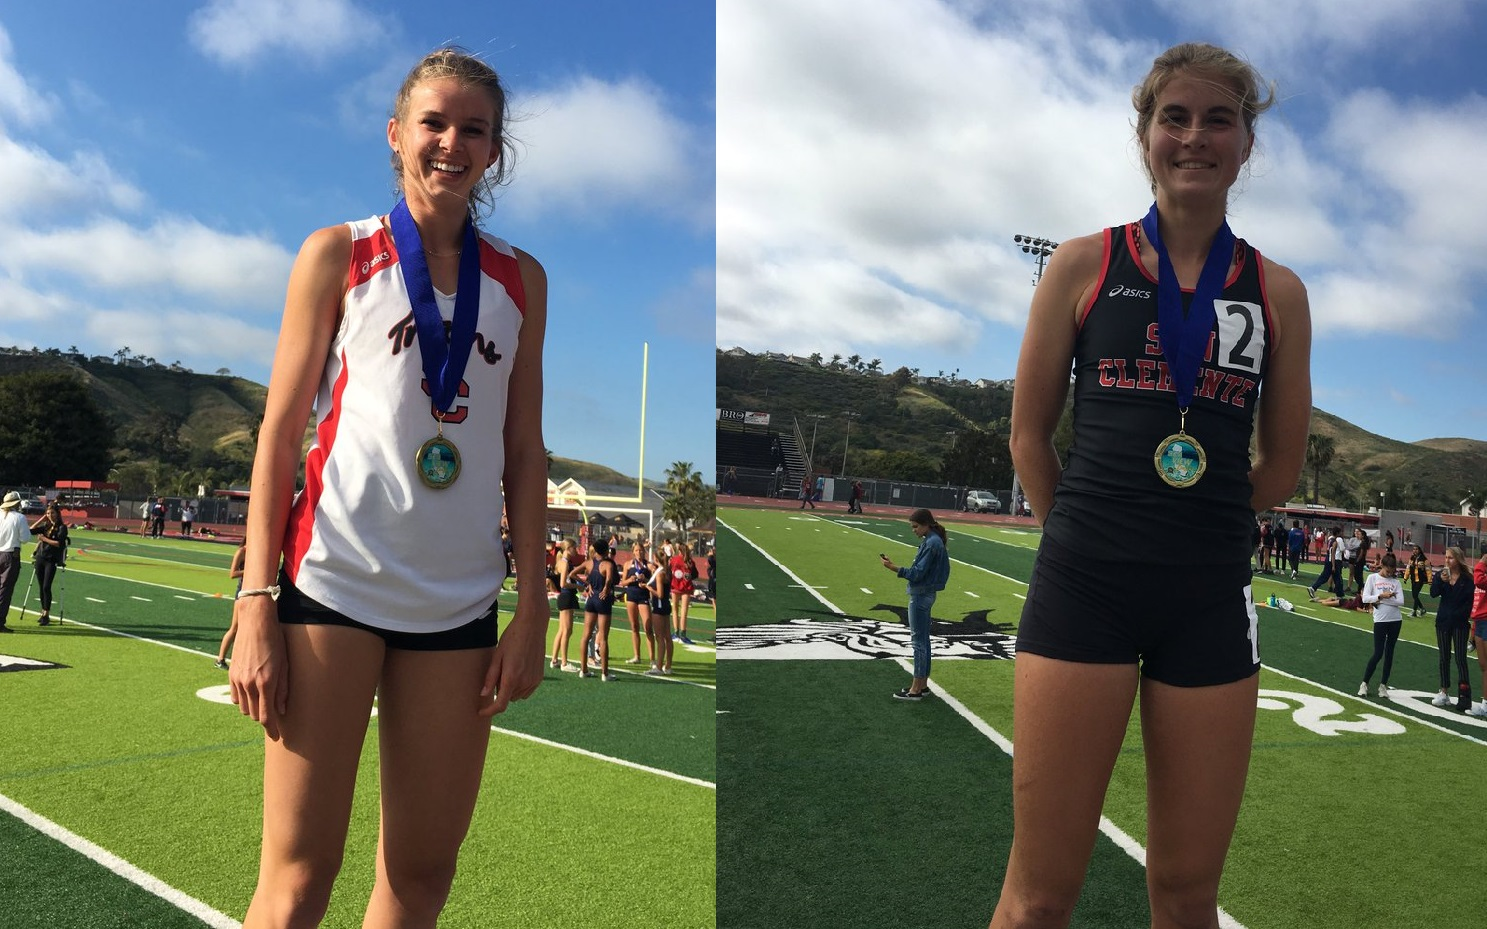 Emilie Bennett (left) and Hana Catsimanes (right) won South Coast League individual titles on April 26. Photo: Courtesy